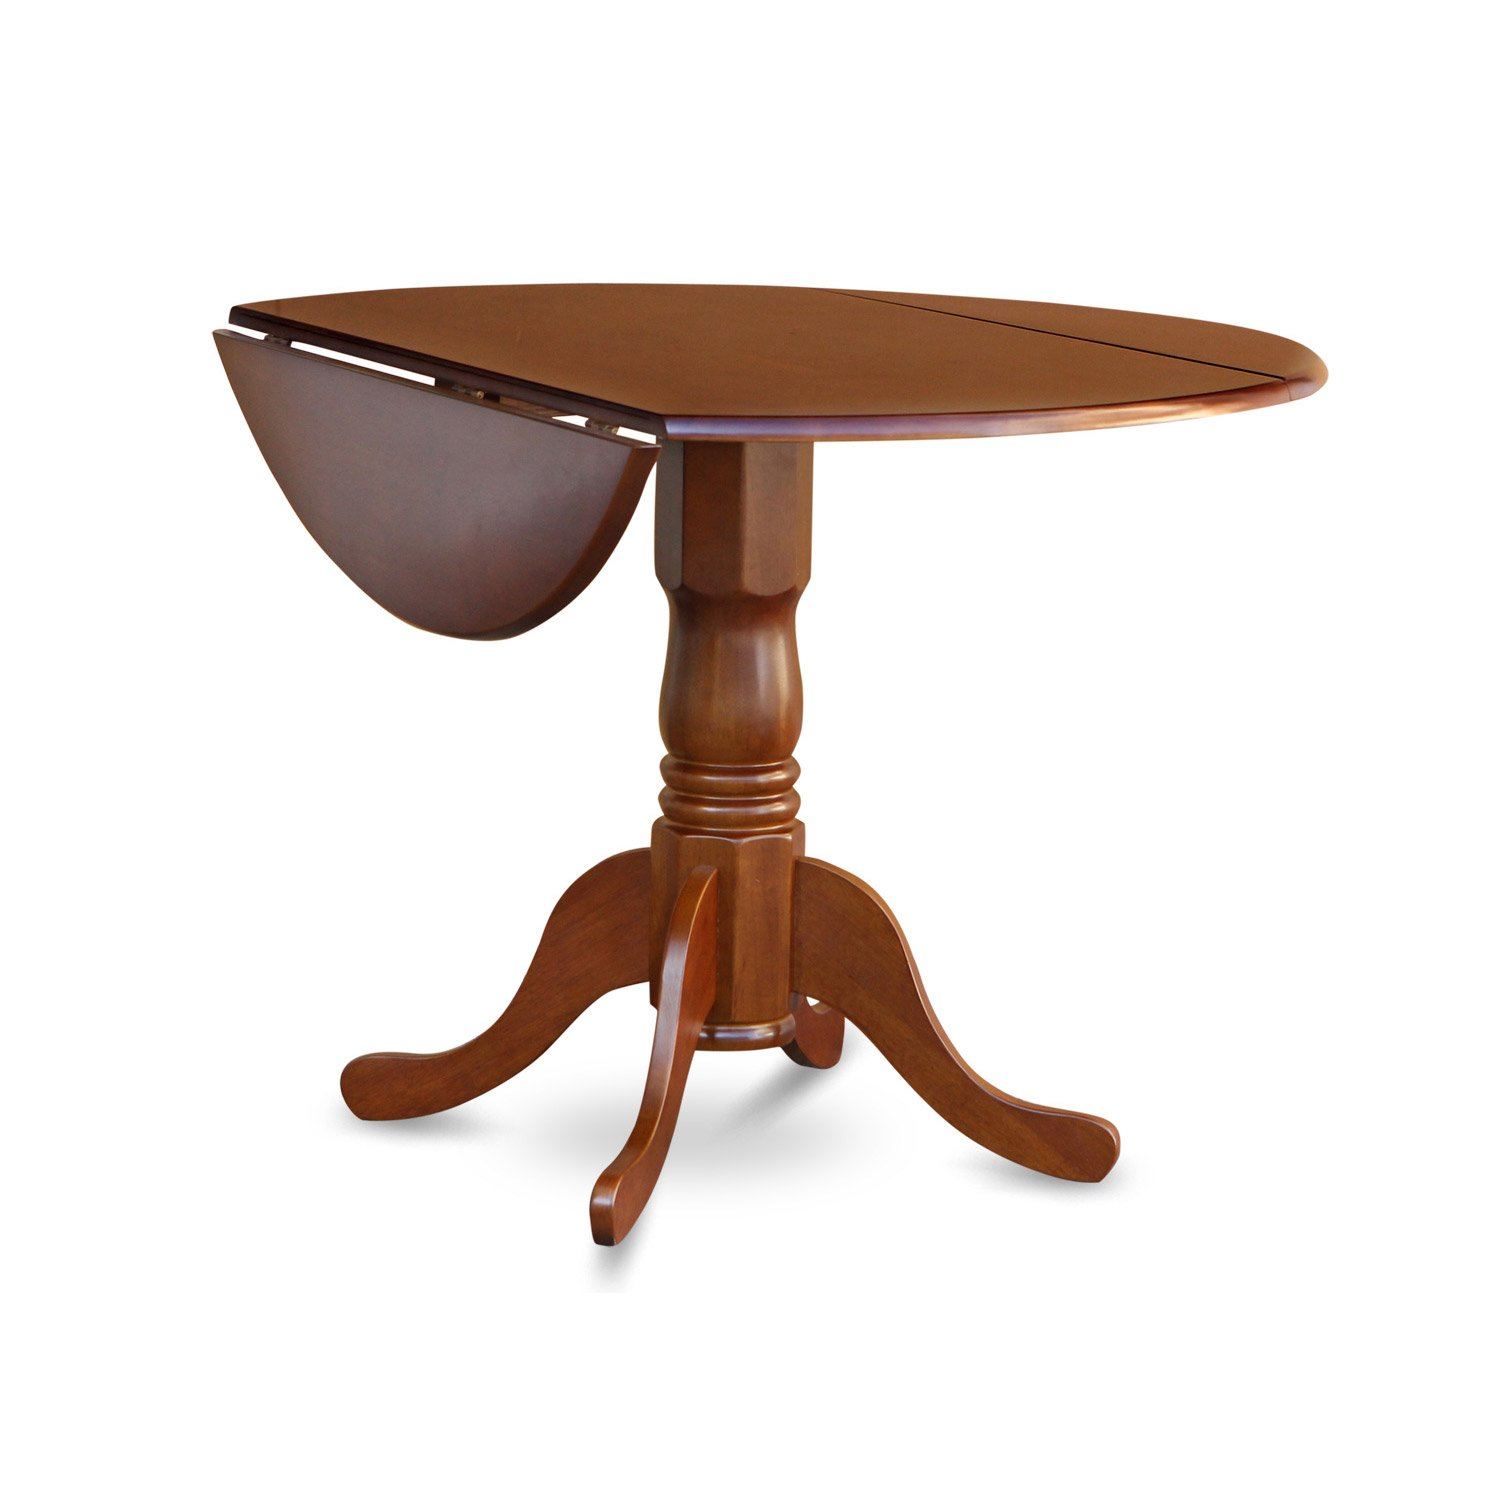 Amazon.com: East West Furniture DLT SBR TP Round Table With Two 9 Inch Drop  Leaves, Saddle Brown Finish: Kitchen U0026 Dining